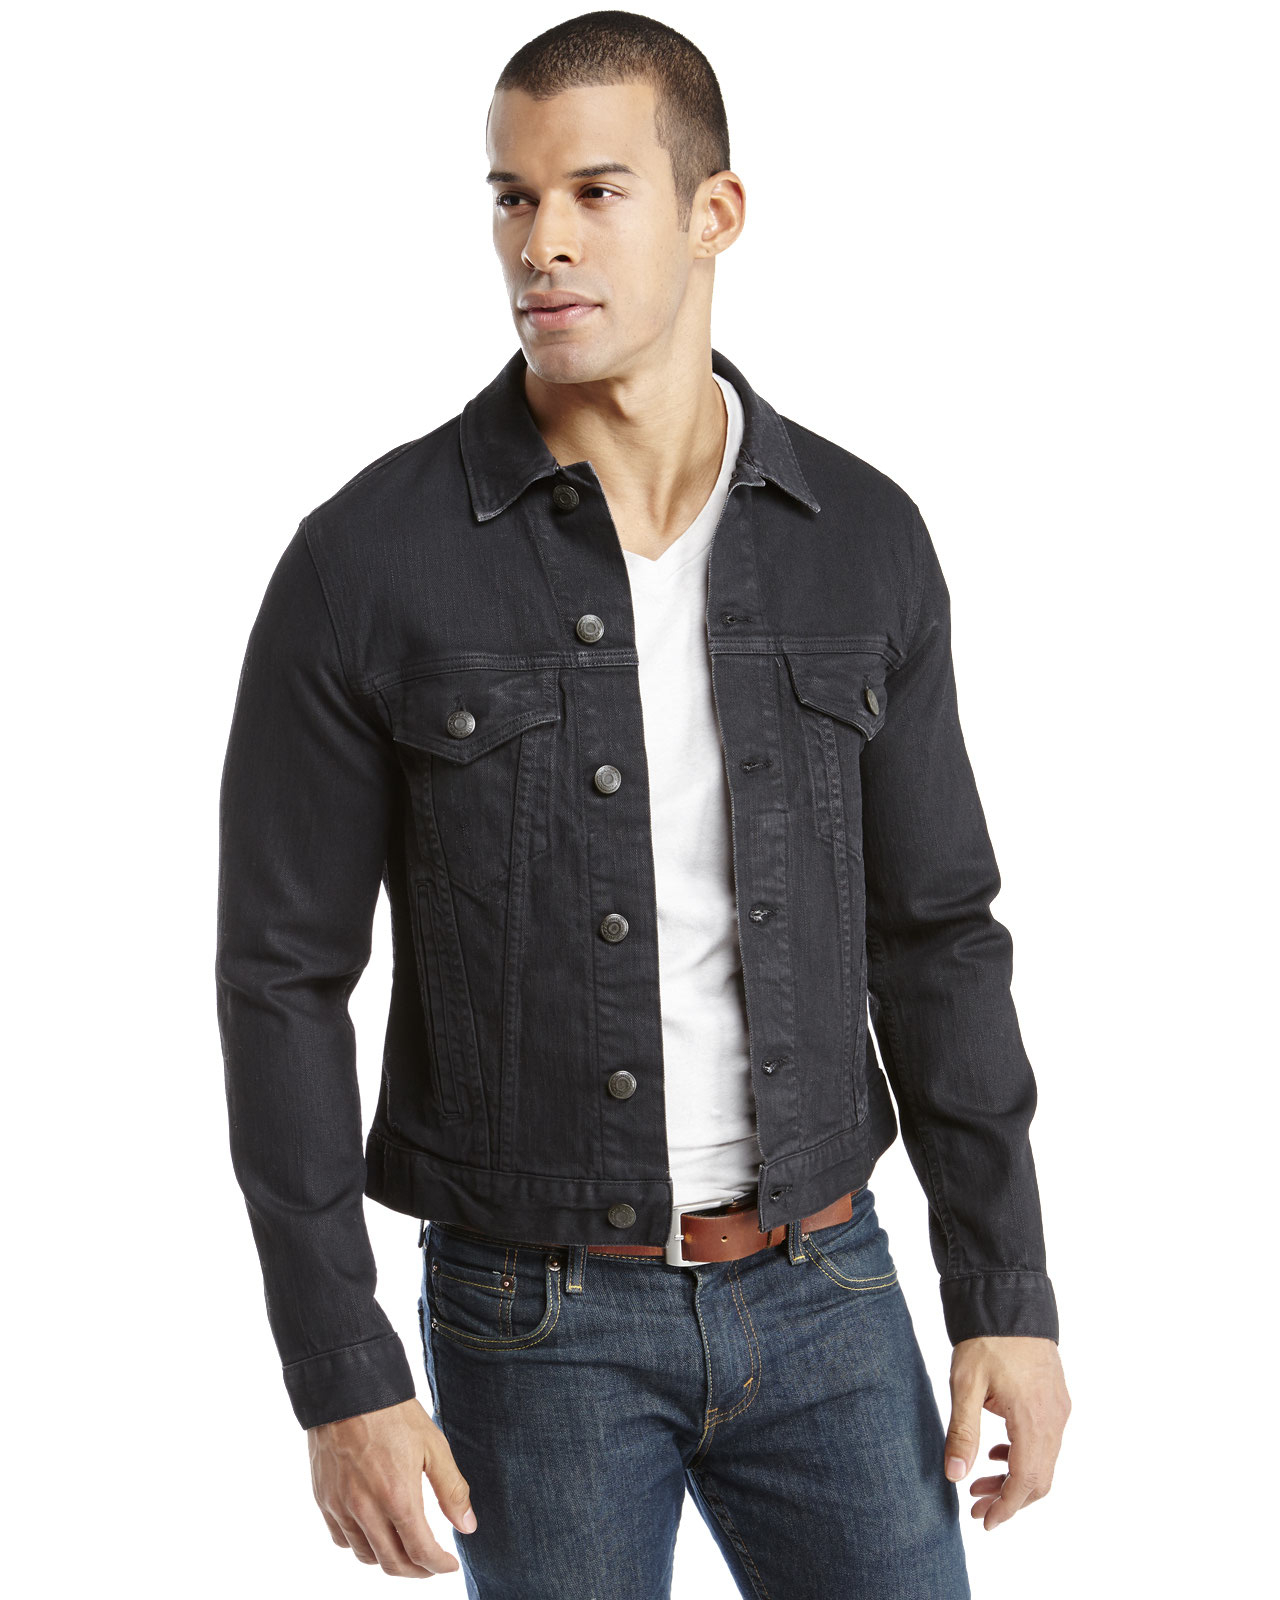 Men Black Denim Jacket - My Jacket